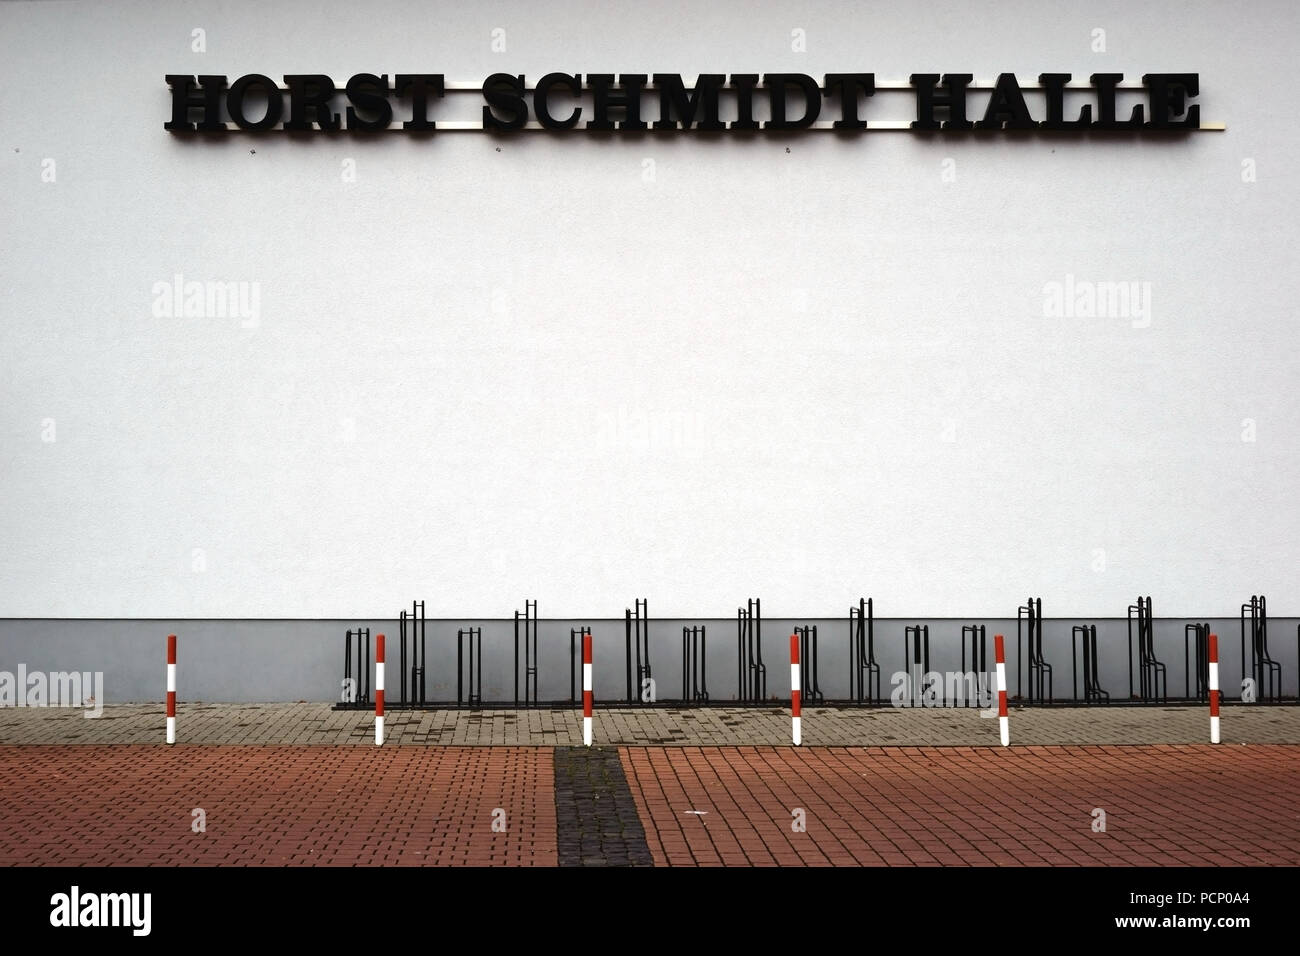 The Horst-Schmidt hall -  a venue for sports clubs and sportive activities in Griesheim - Stock Image